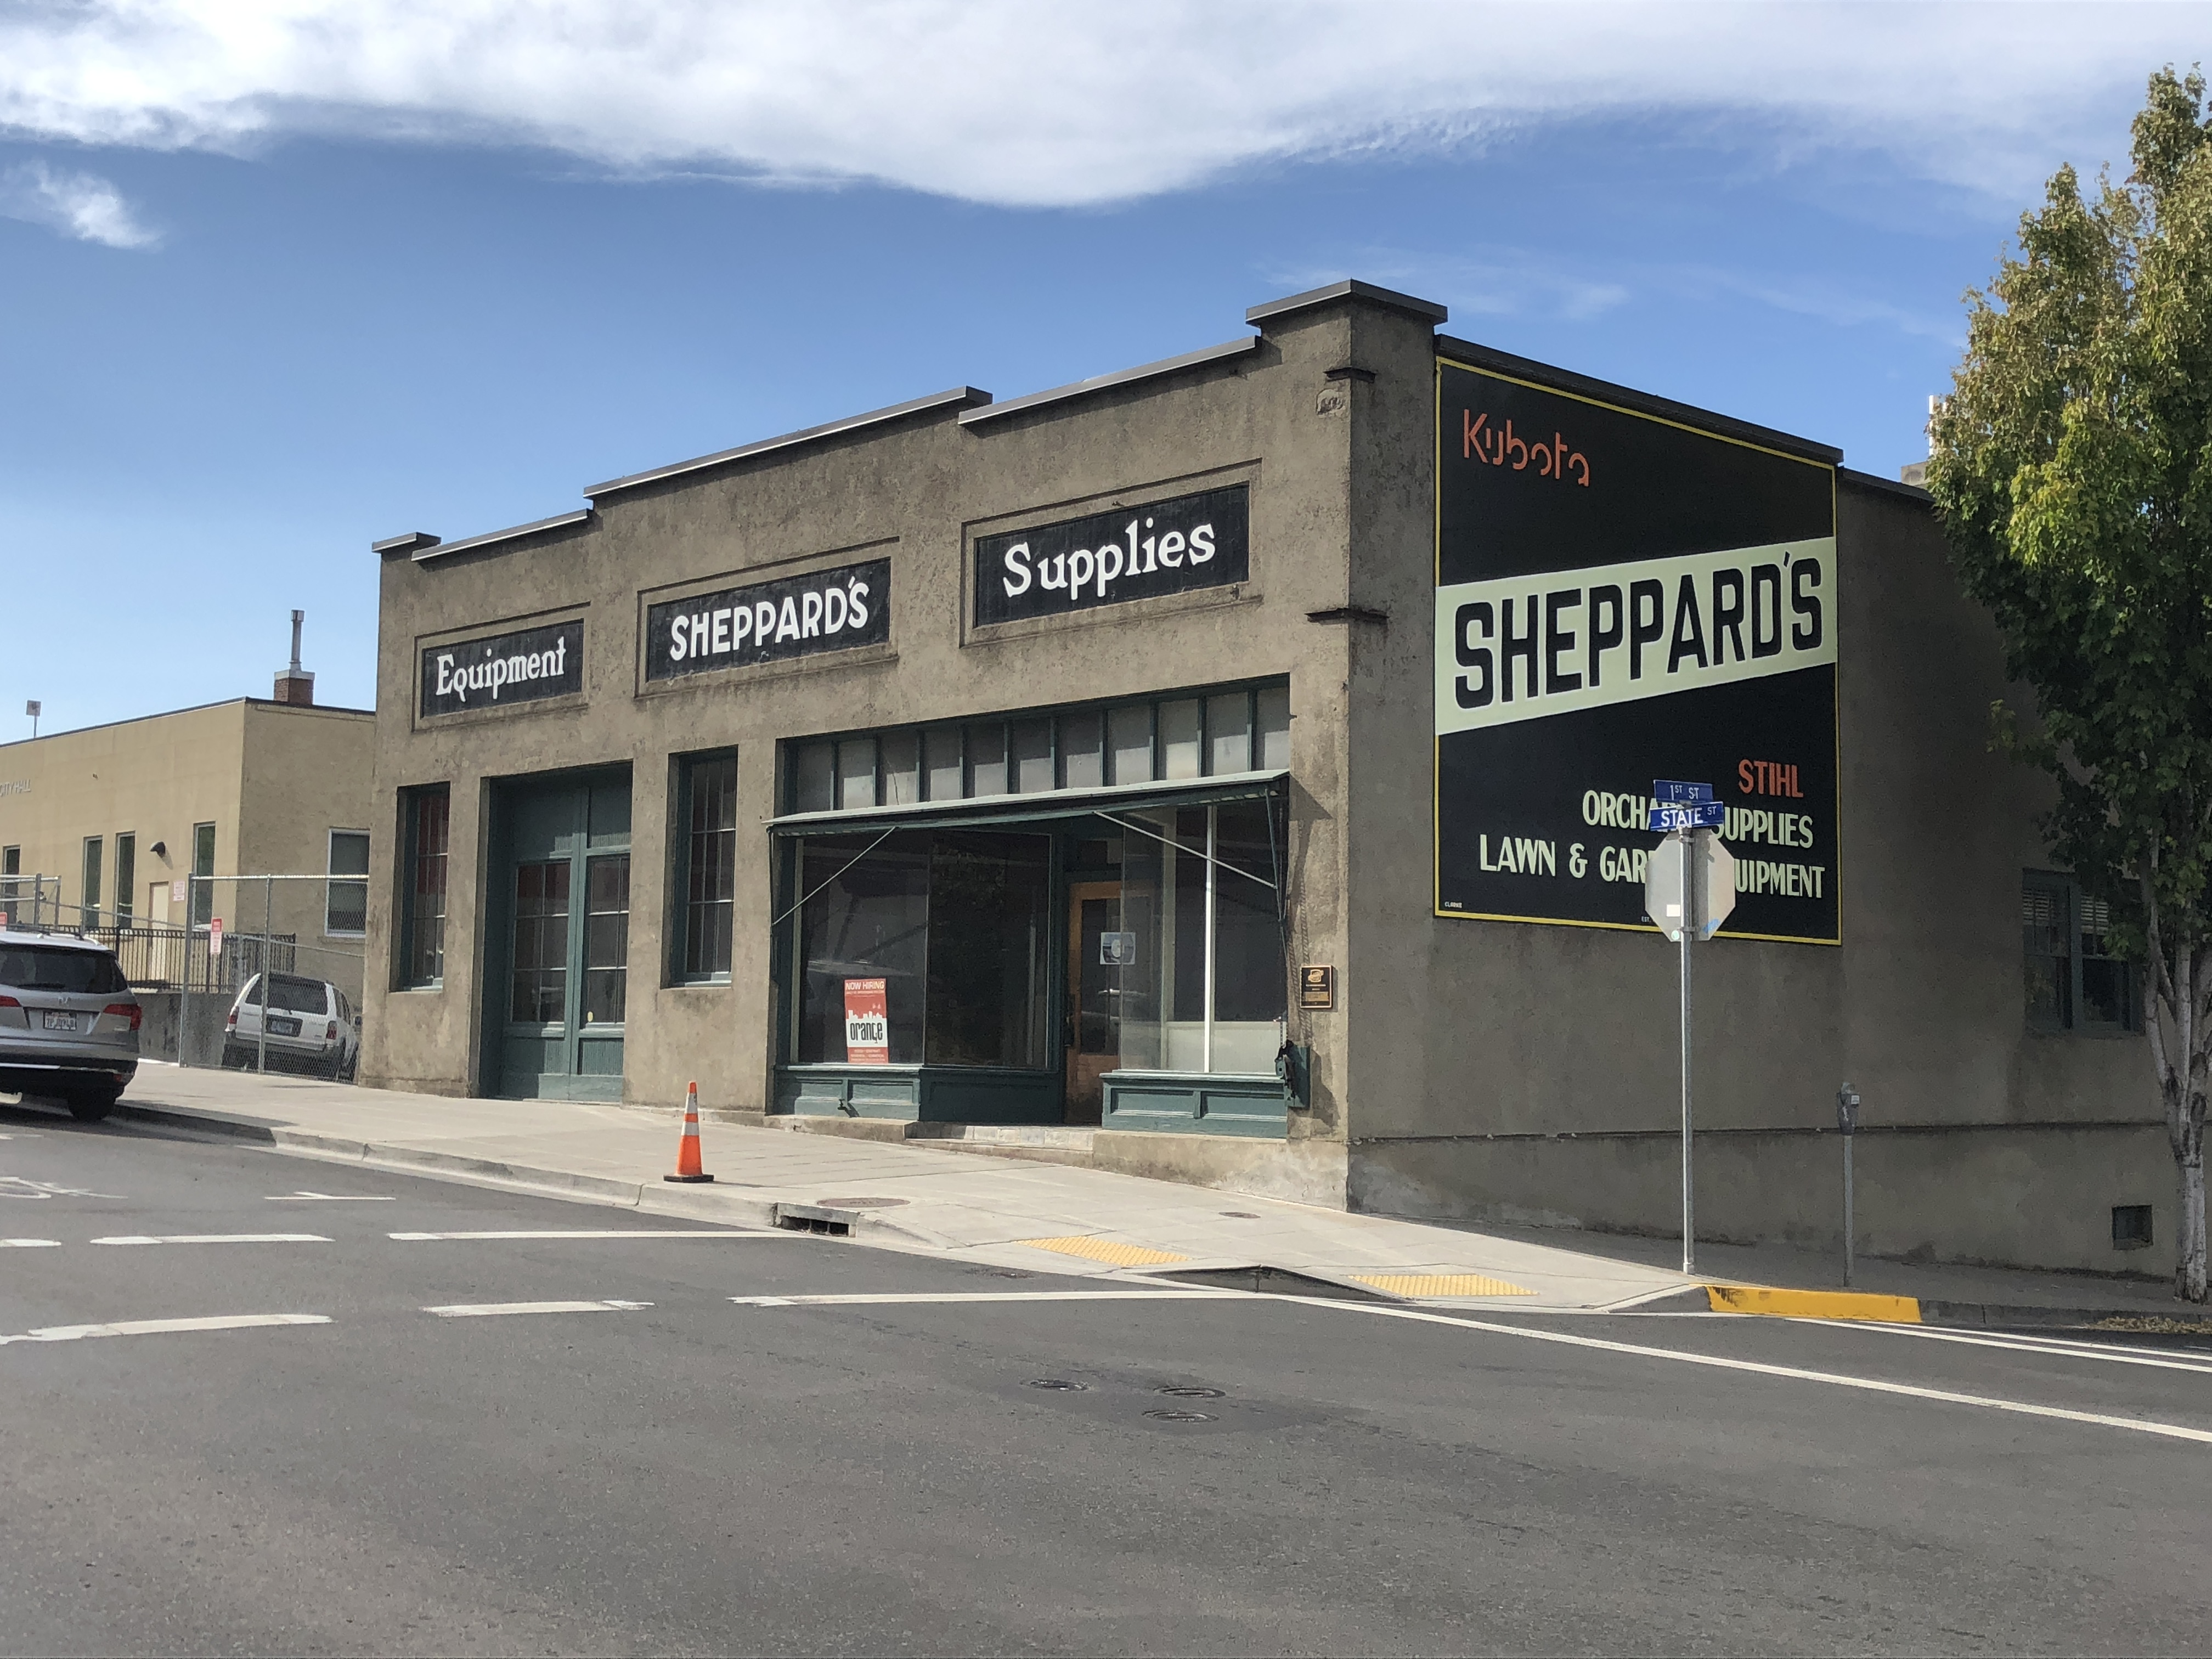 Exterior of Sheppards building in Hood River